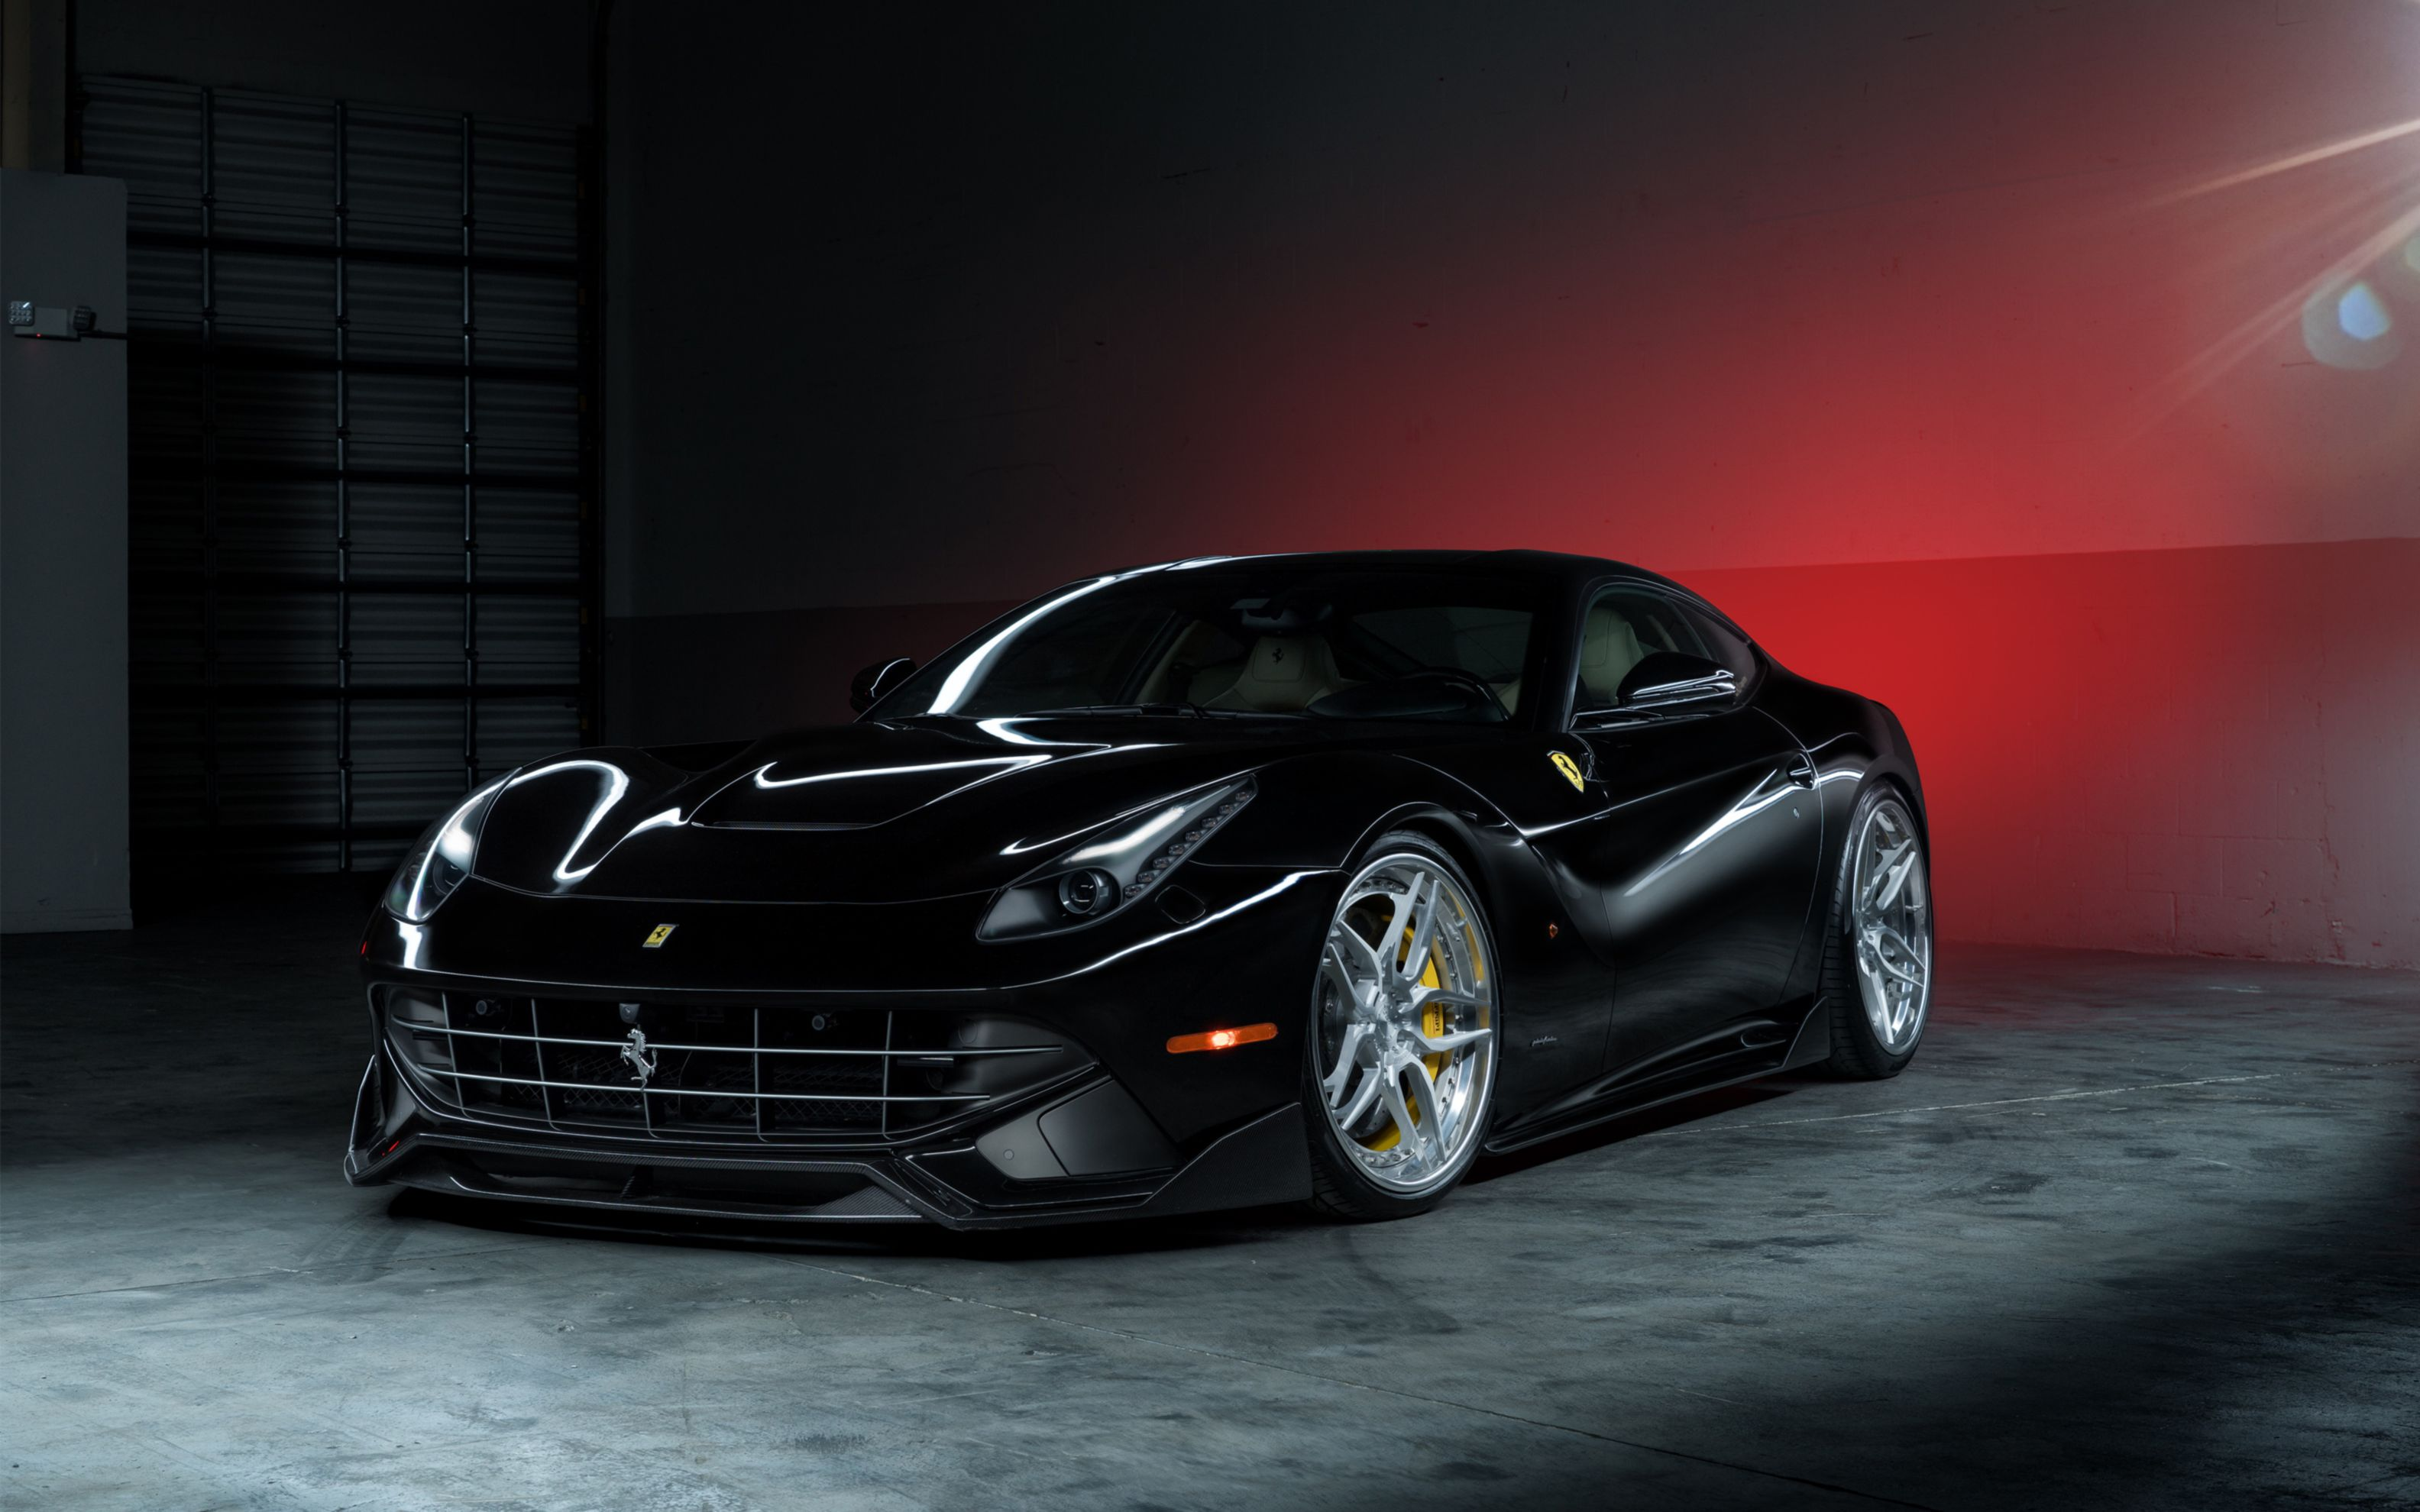 Download free HD Ferrari F12 Berlinetta Wide Wallpaper, image